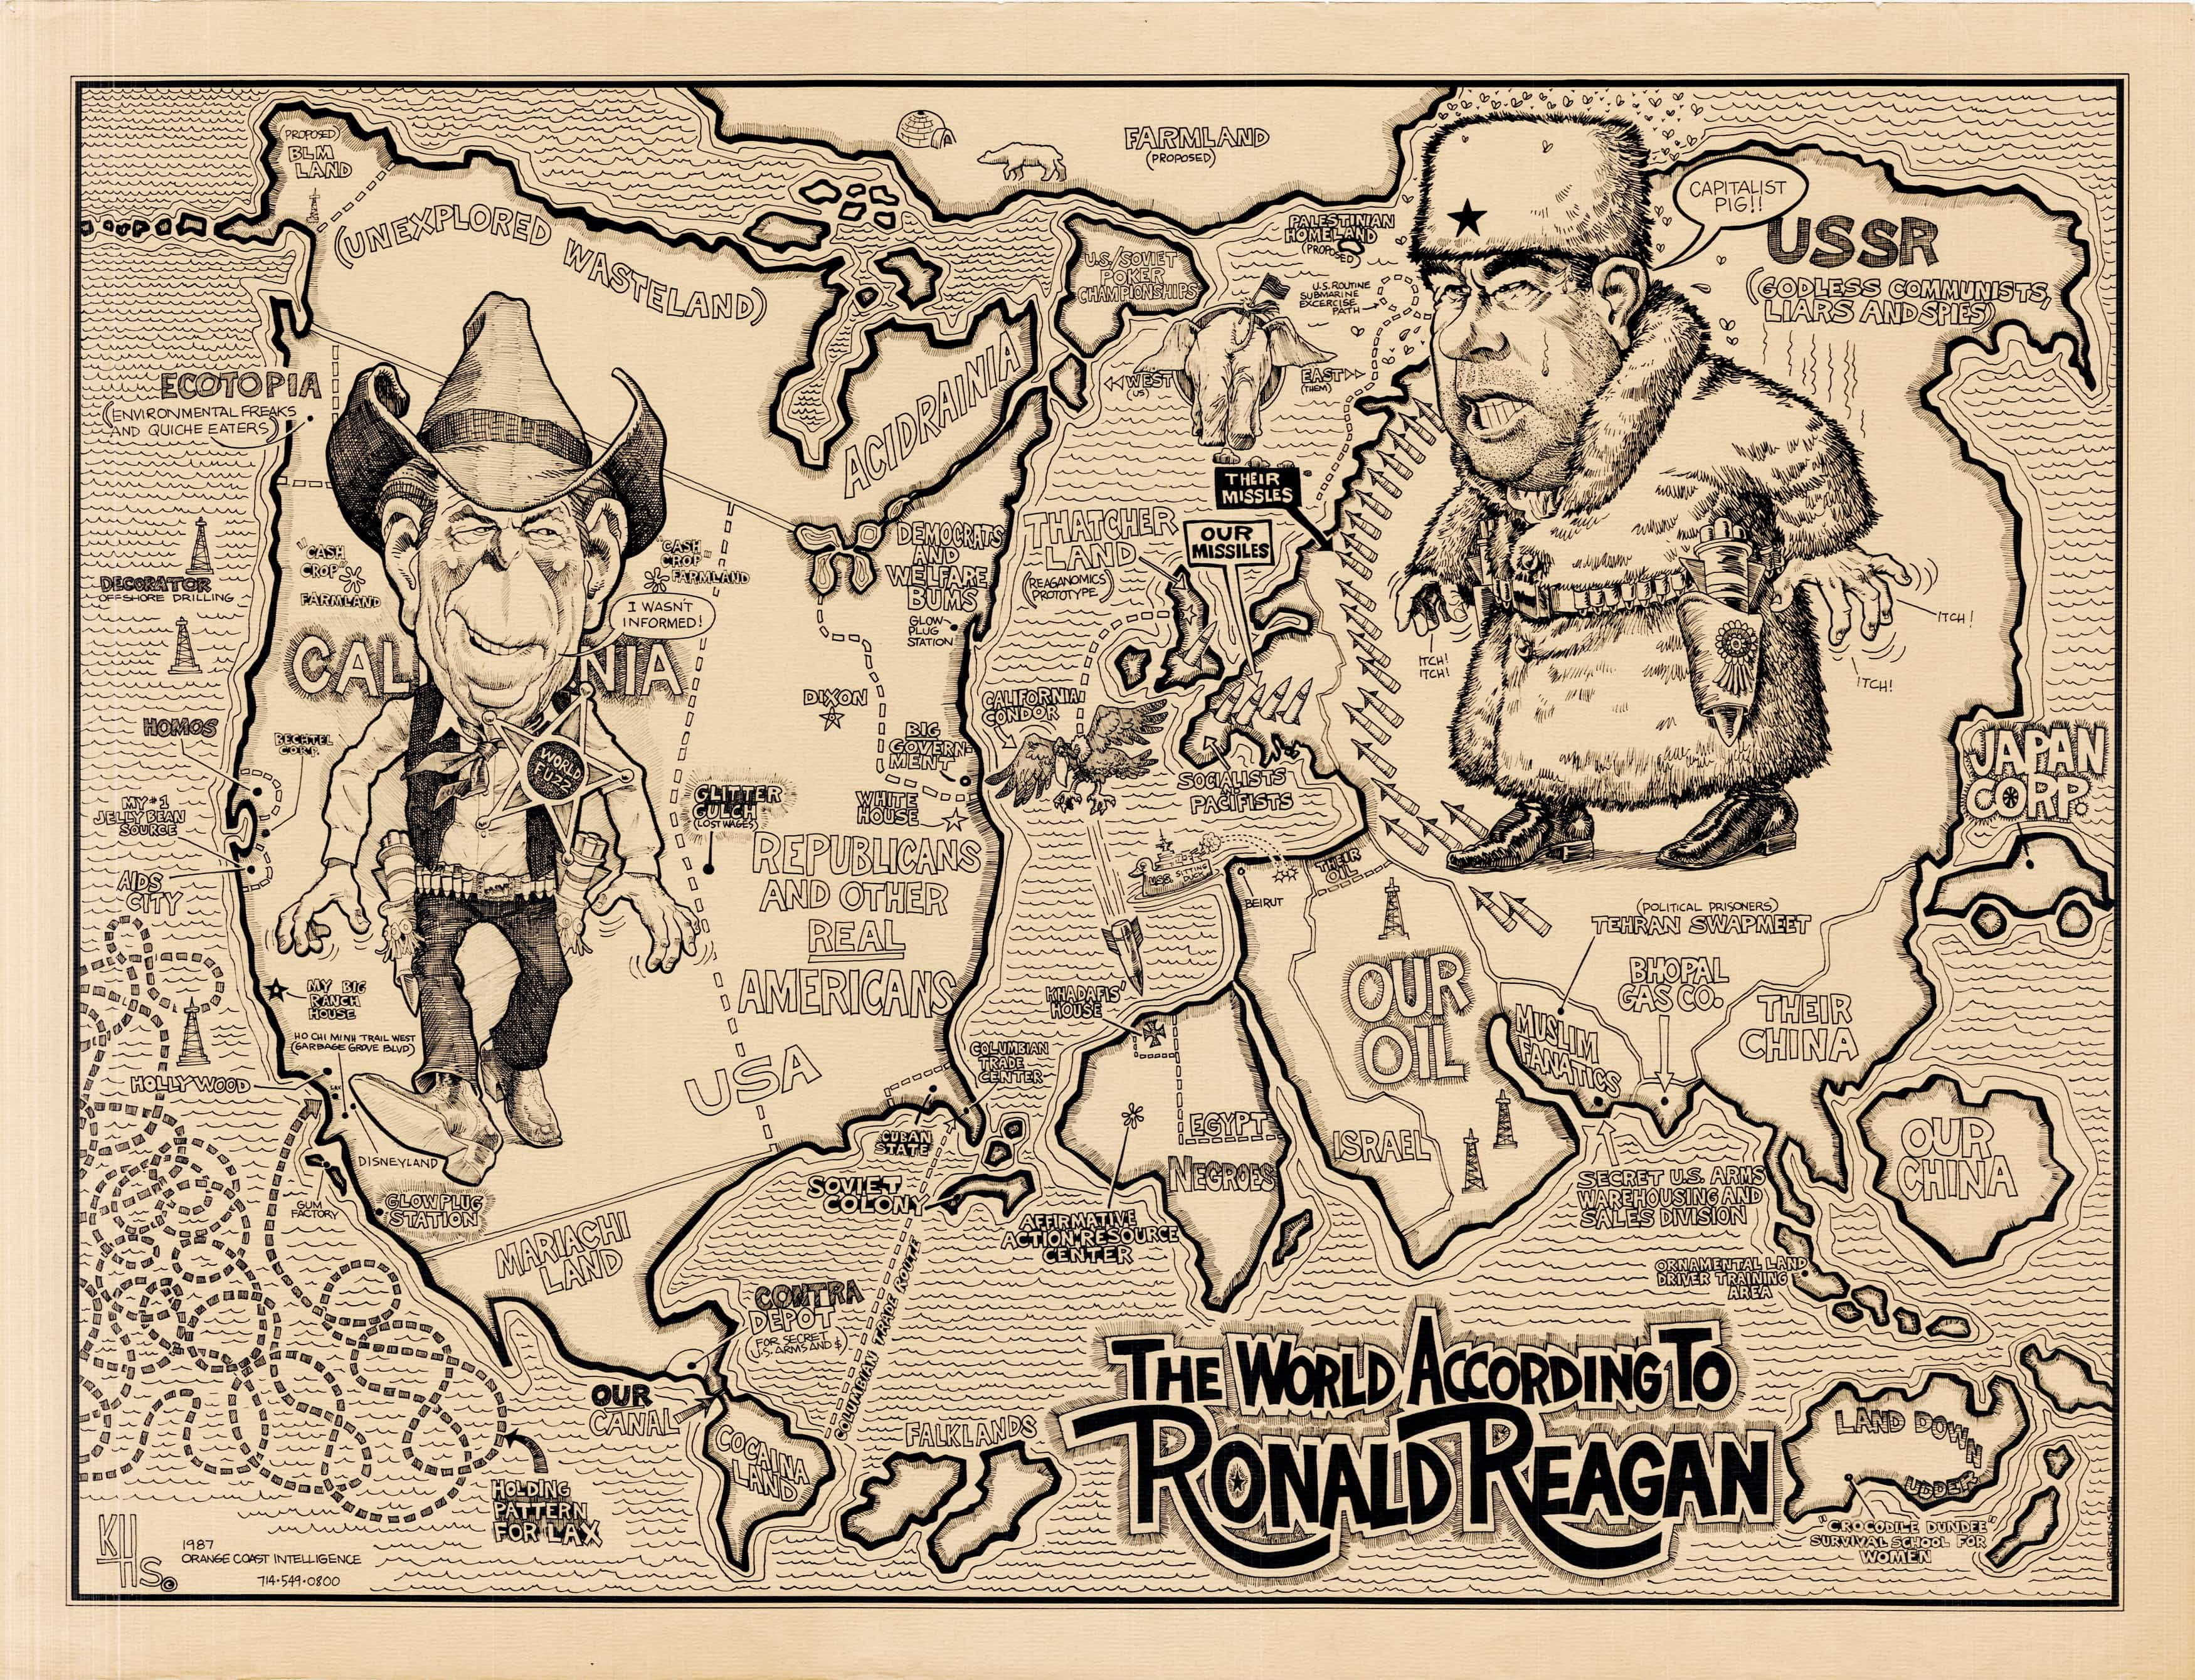 unrecorded 1987 map of the world according to ronald